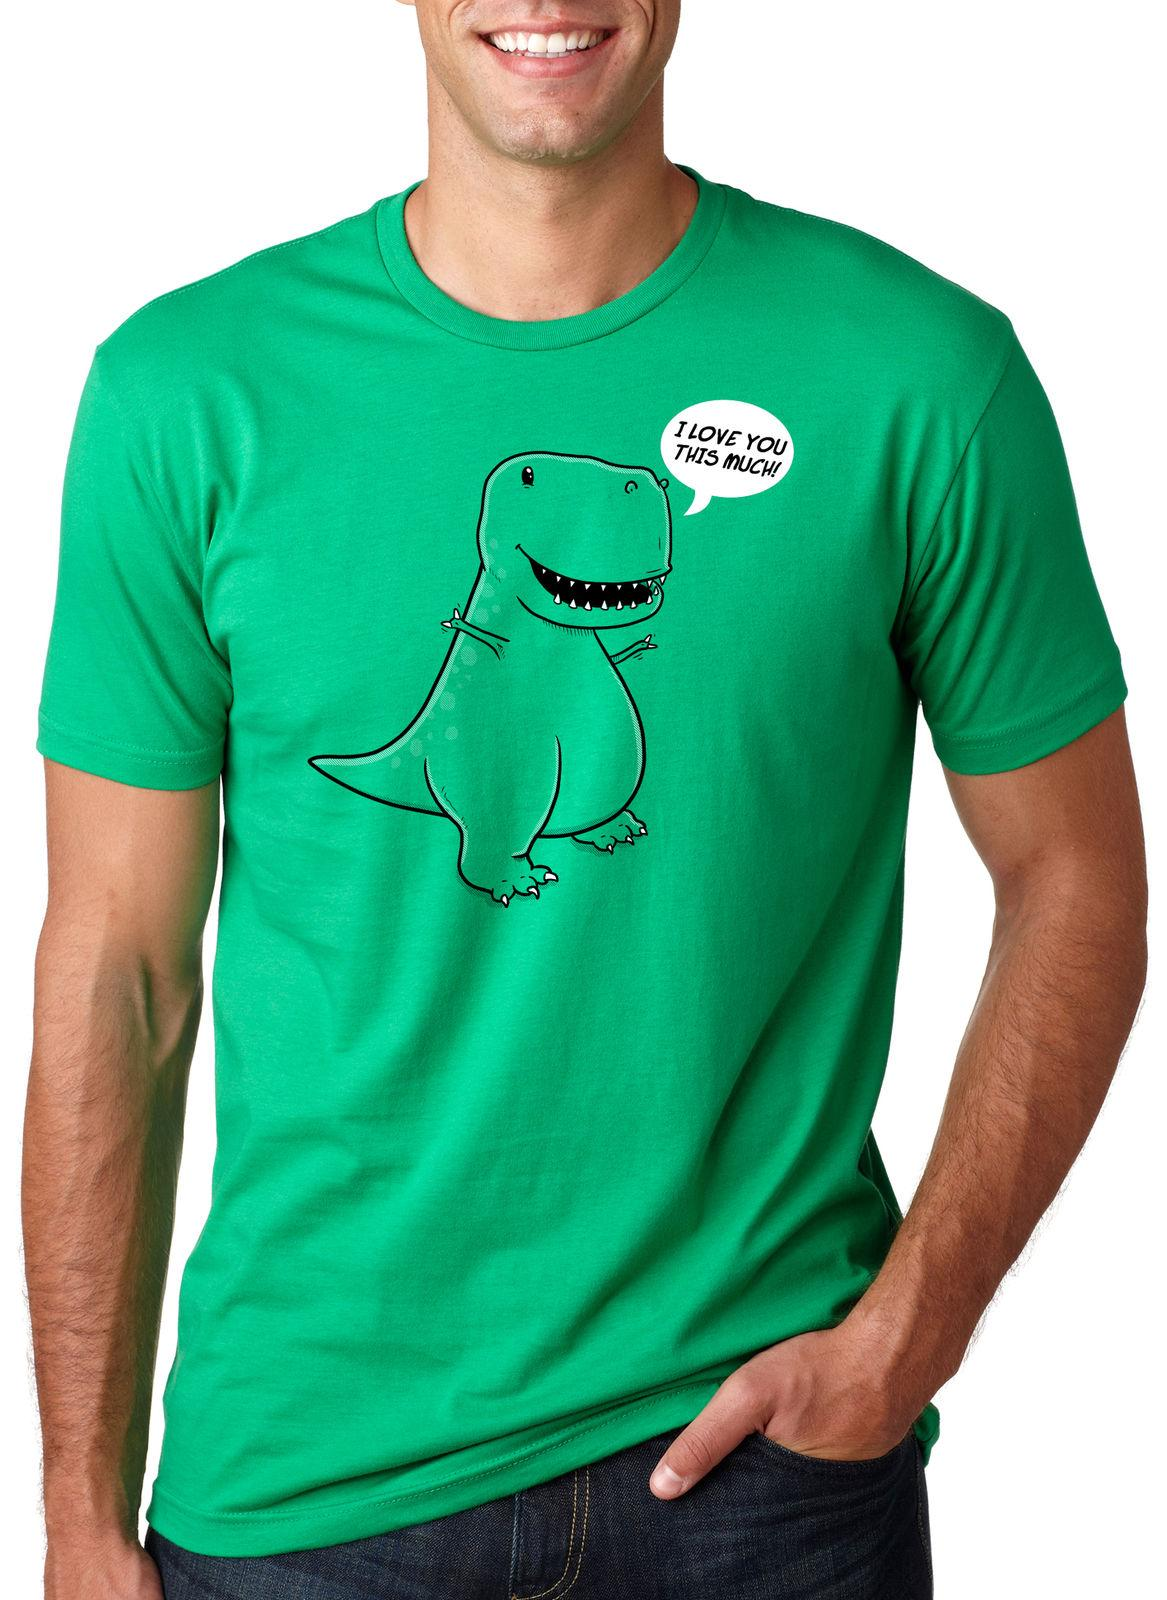 6787866e7 Details Zu I Love You This Much T Rex T Shirt Funny Trex Dinosaur Tee Dino  Tee Casual Funny Unisex Tee Gift T Shirt Shopping Online T Shirt Humor From  ...